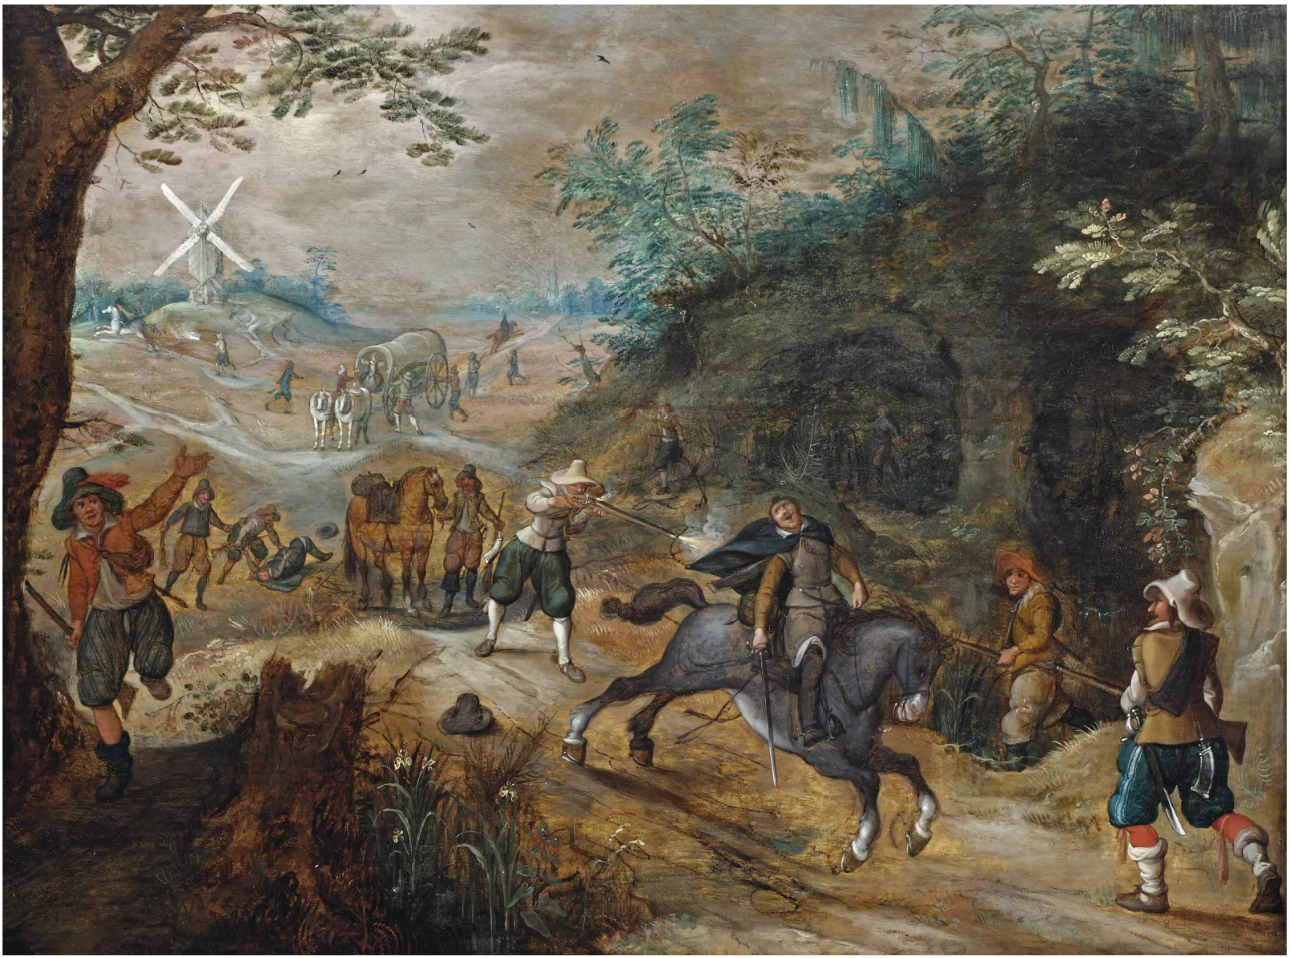 Sebastiaan_Vrancx_and_Jan_Breughel_II_-_A_landscape_with_a_travelling_company_being_ambushed